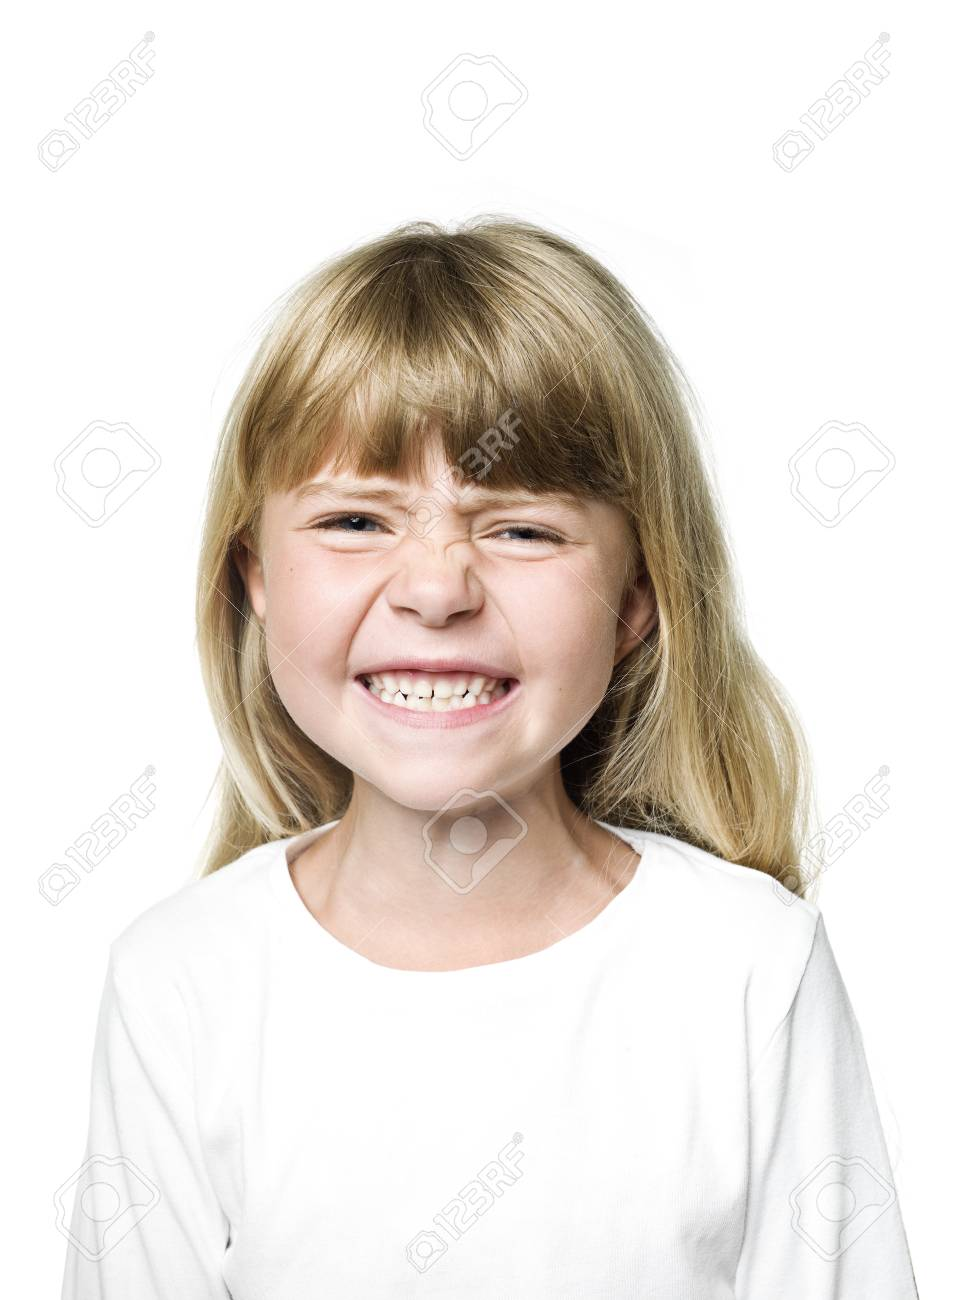 Portrait of an Angry  Girl on white background Stock Photo - 14767921